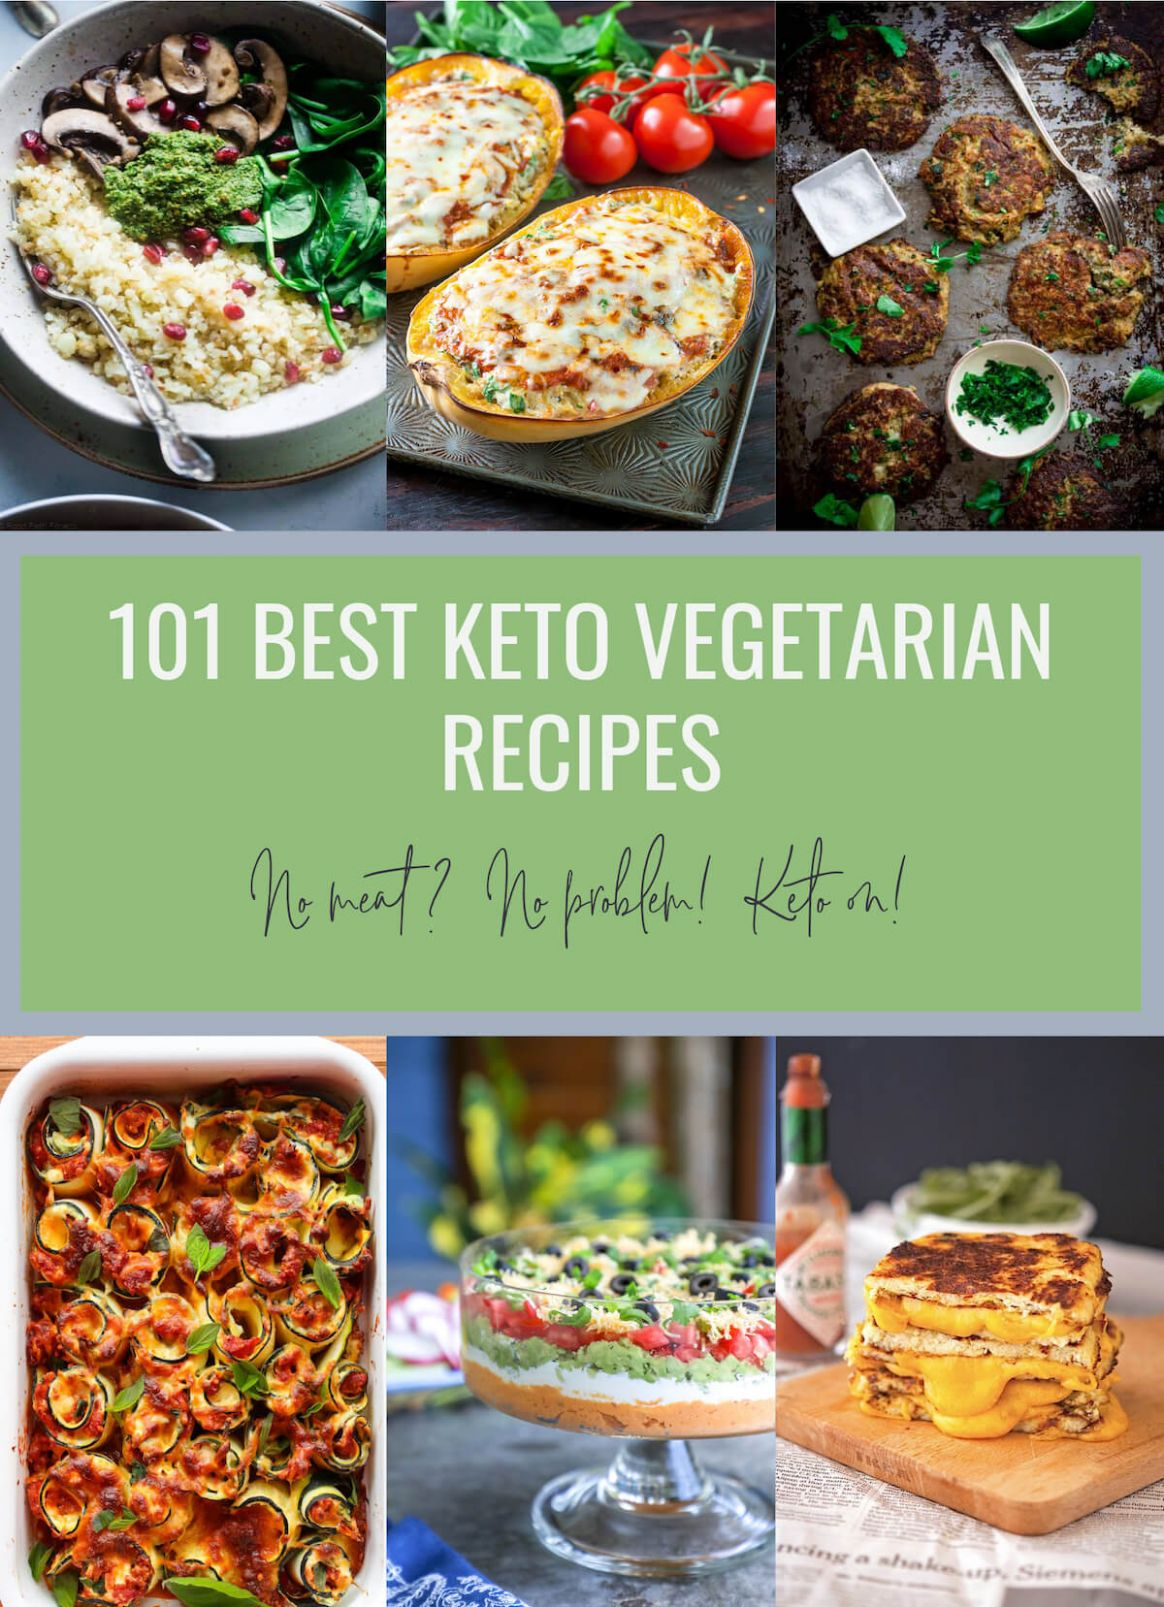 10 Best Keto Vegetarian Recipes - Low Carb | I Breathe I'm Hungry